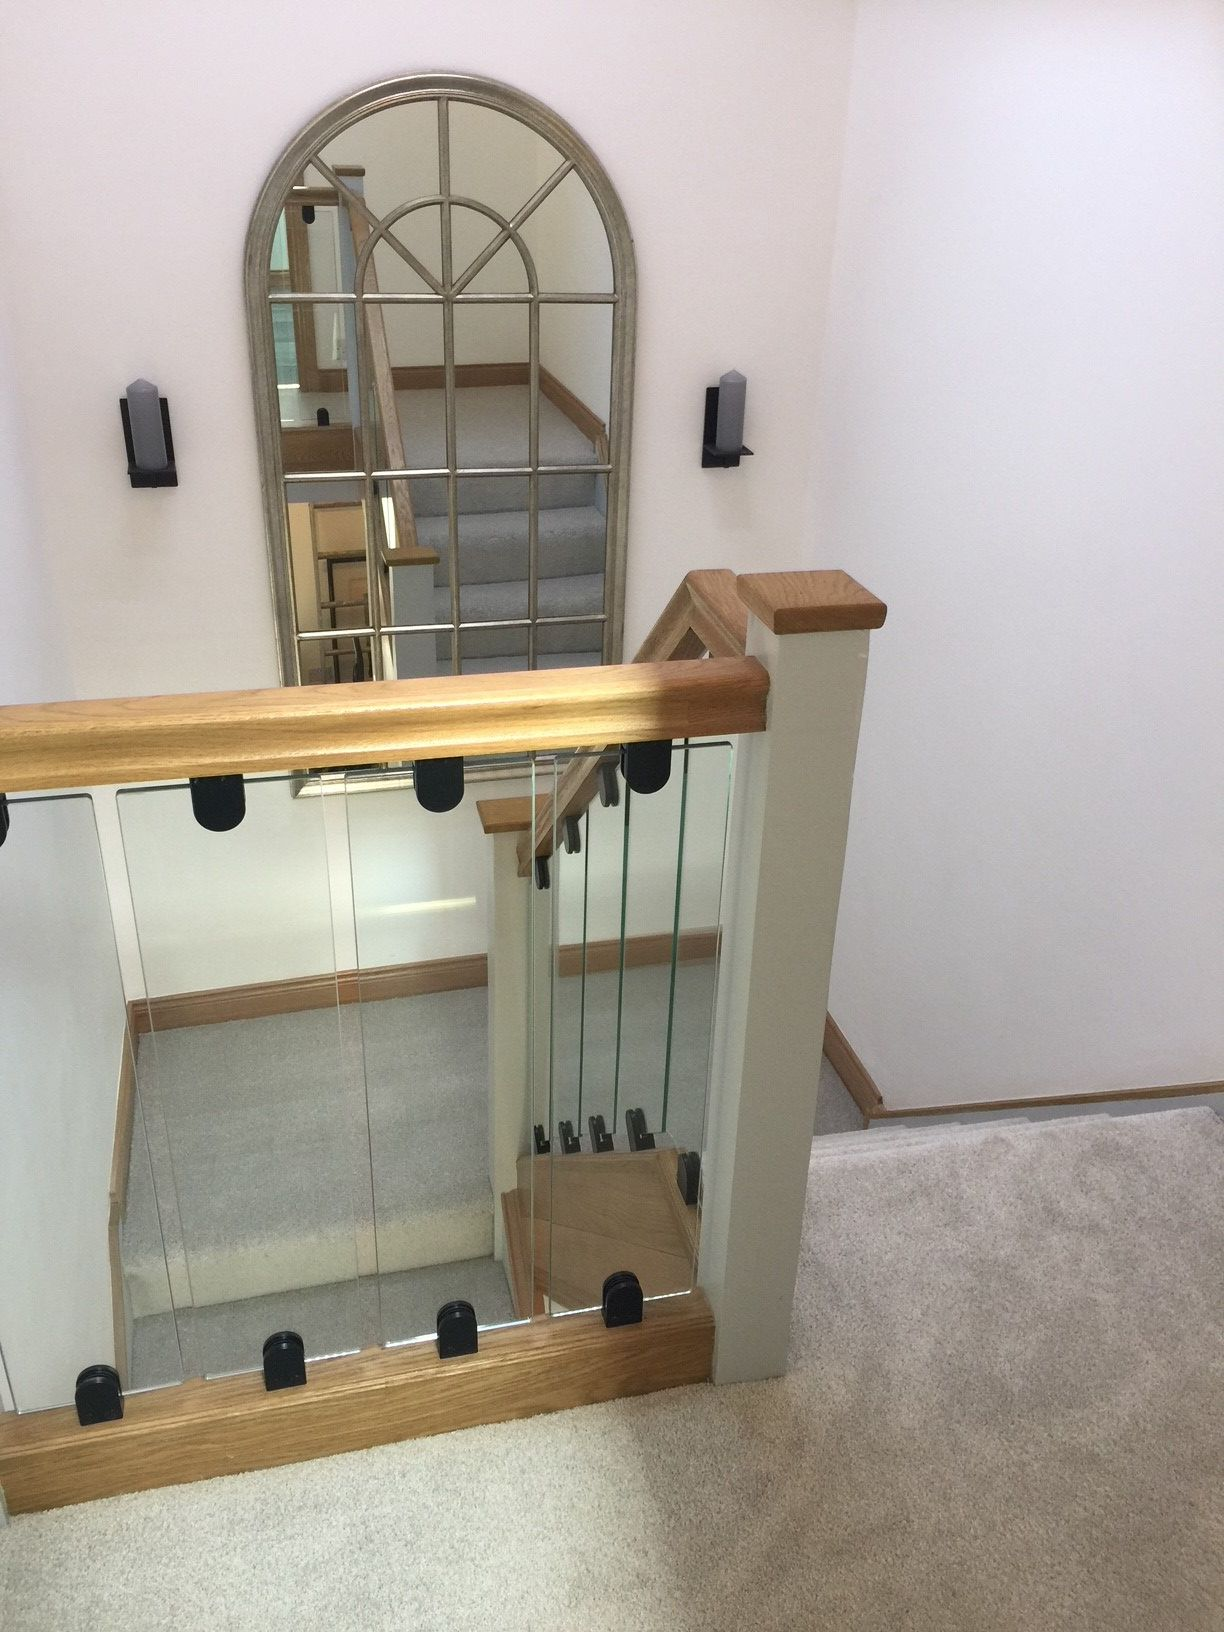 Staircase upgrade idea Toughened glass spindle panels